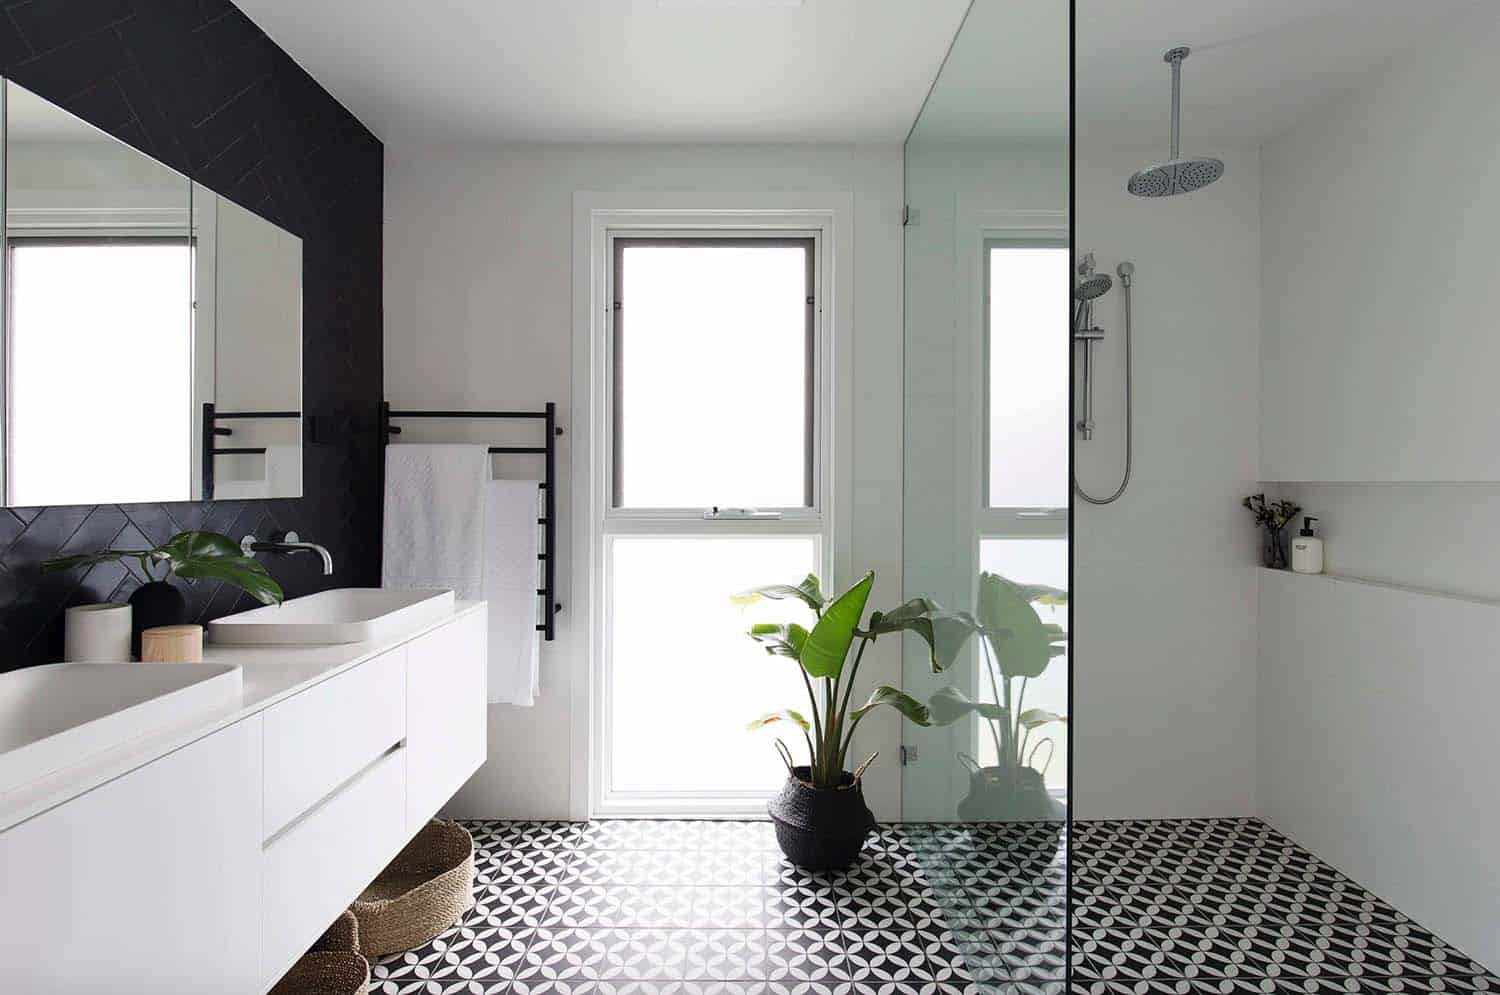 Bathroom Tiles Black And White Ideas | 25 Incredibly Stylish Black And White Bathroom Ideas To Inspire